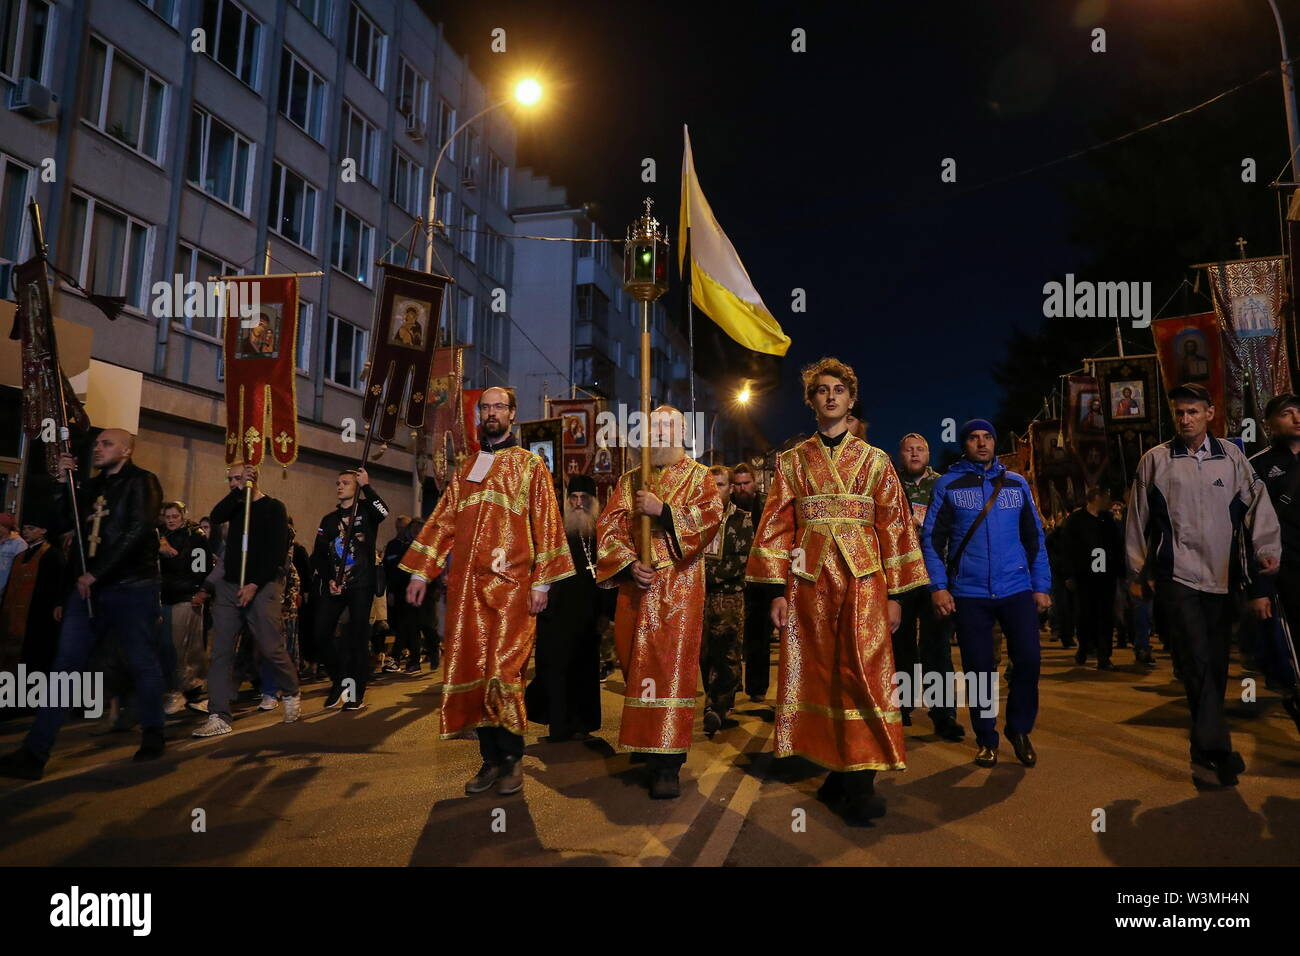 Yekaterinburg, Russia. 17th July, 2019. YEKATERINBURG, RUSSIA - JULY 17, 2019: Members of the clergy take part in a religious procession in memory of the Russian royal family from the Church of All Saints in Yekaterinburg to the Ganina Yama Monastery in the Sverdlovsk Region. Emperor Nicholas II of Russia and his family were executed on July 17, 1918. The procession is held as part of the Tsar Days Orthodox Culture Festival. Donat Sorokin/TASS Credit: ITAR-TASS News Agency/Alamy Live News - Stock Image